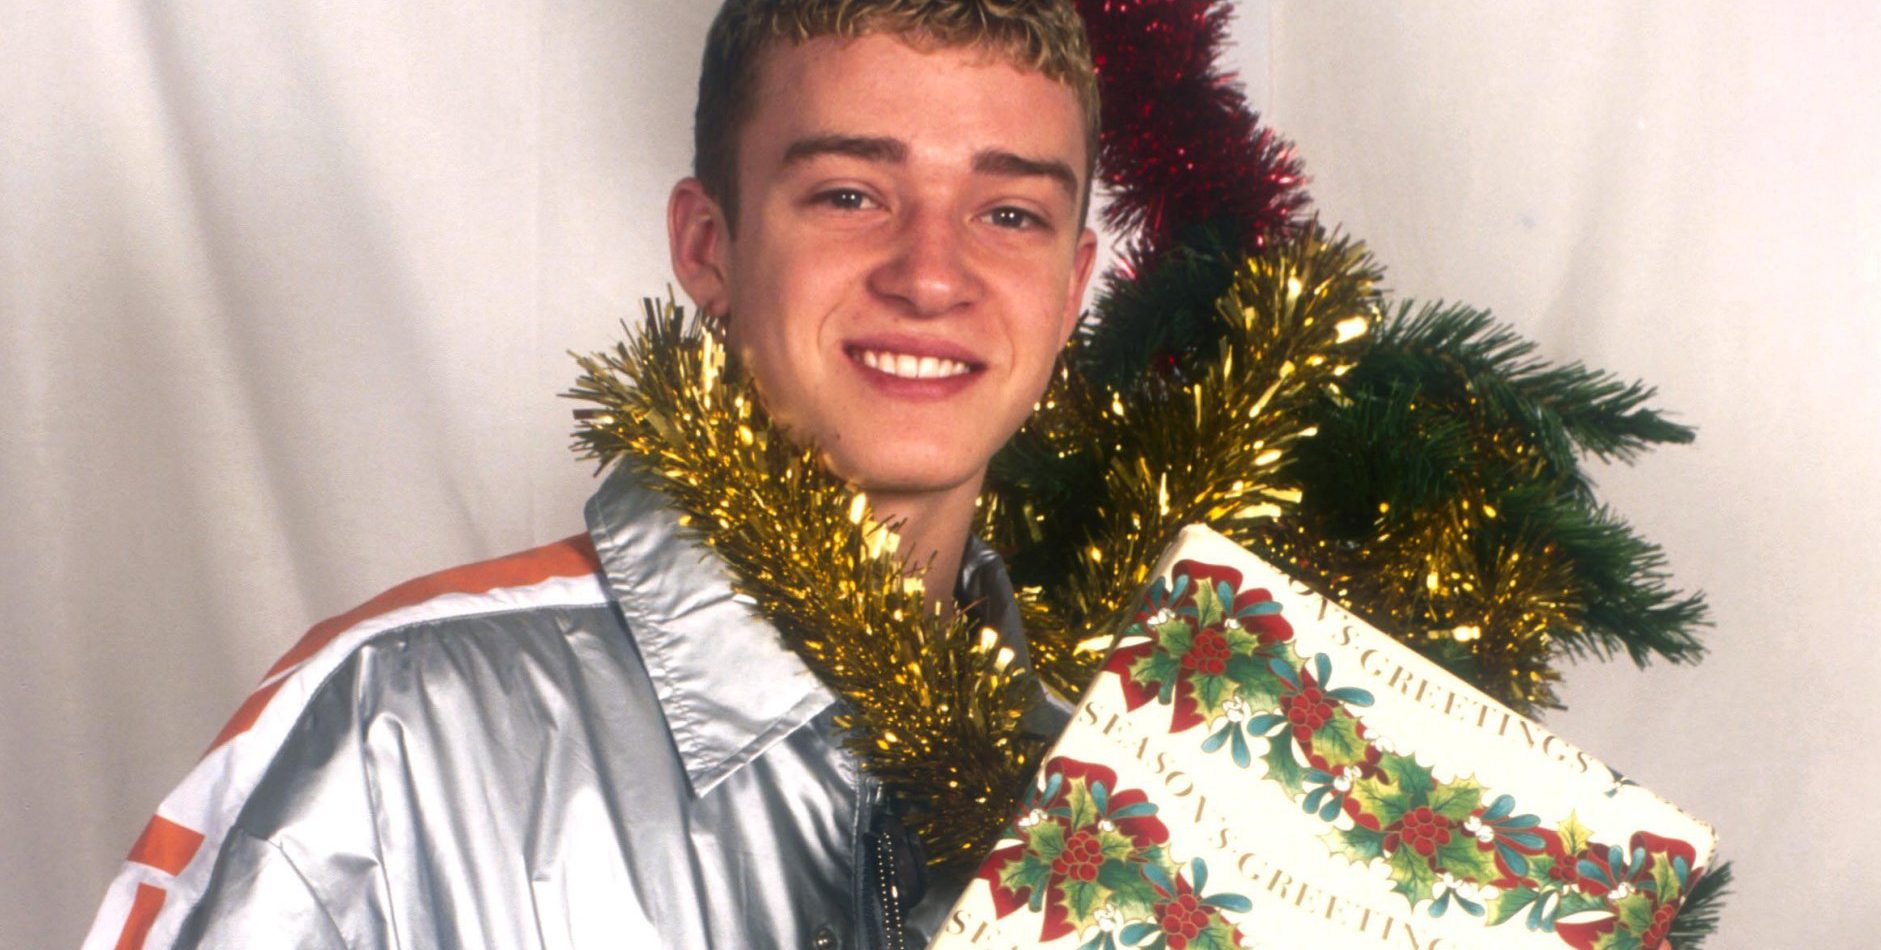 Christmas cards celebrities would rather forget – but are just too awkward not to share